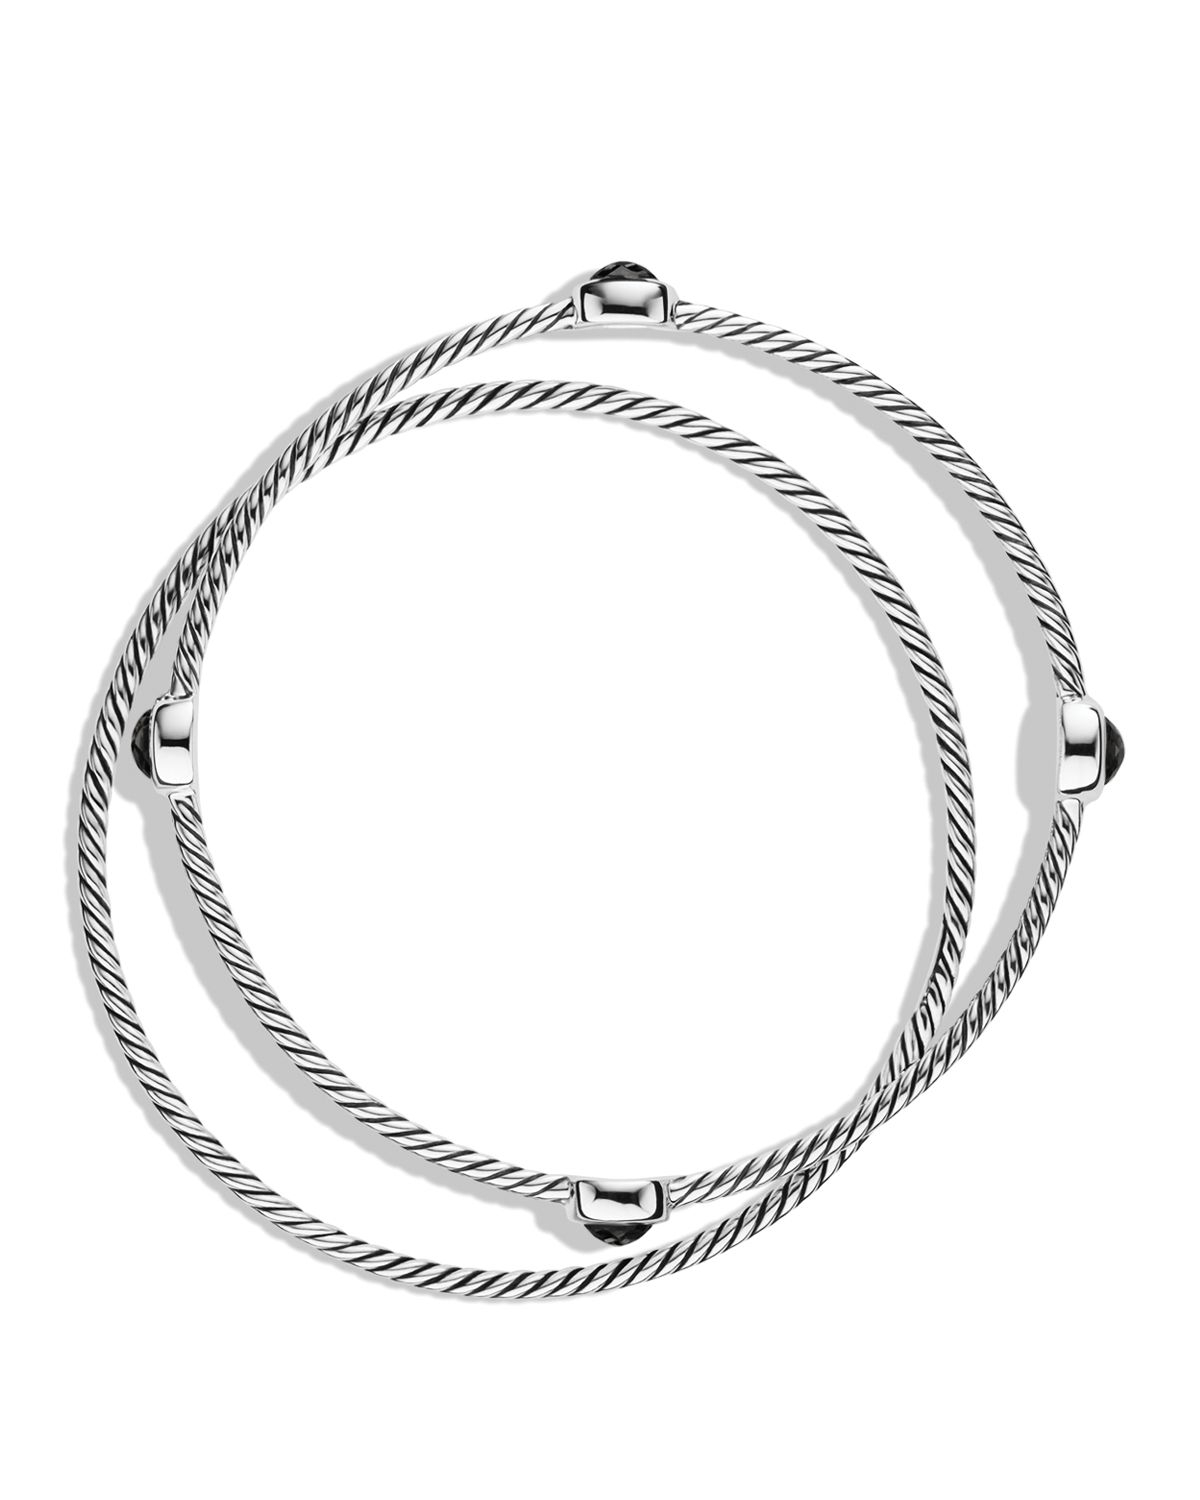 David yurman Color Classics Bangles With Black Onyx in ...